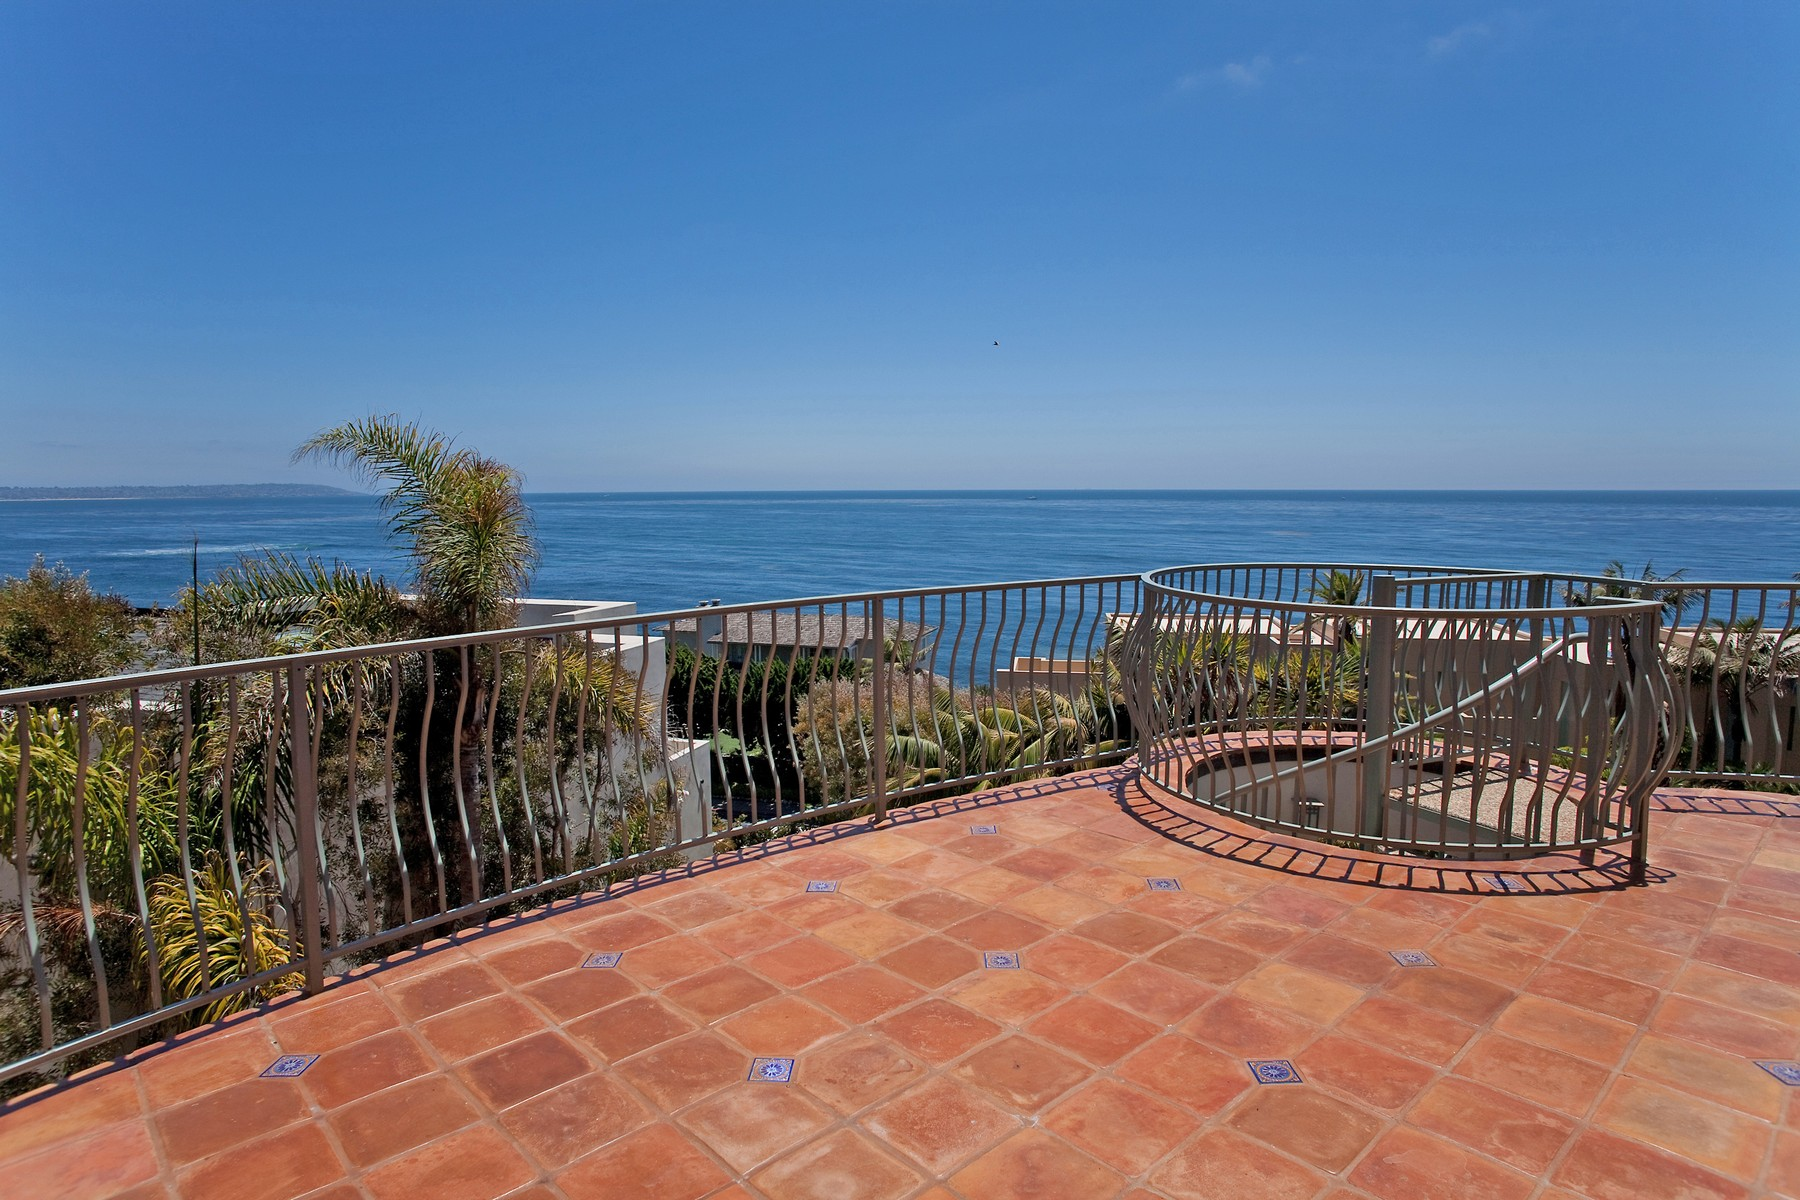 Additional photo for property listing at 6209 Camino De La Costa  La Jolla, California 92037 United States